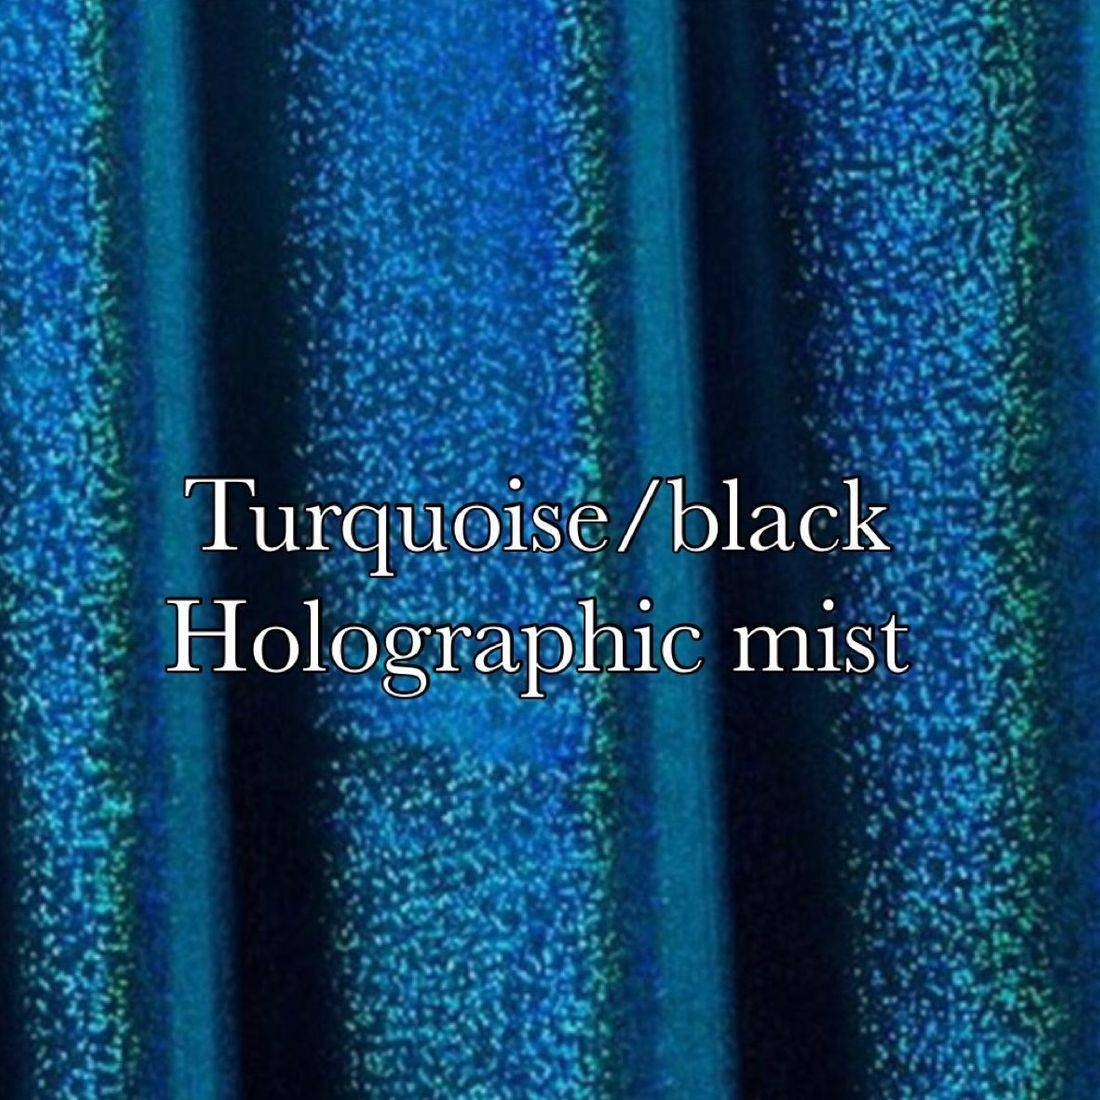 Turquoise black holographic mist